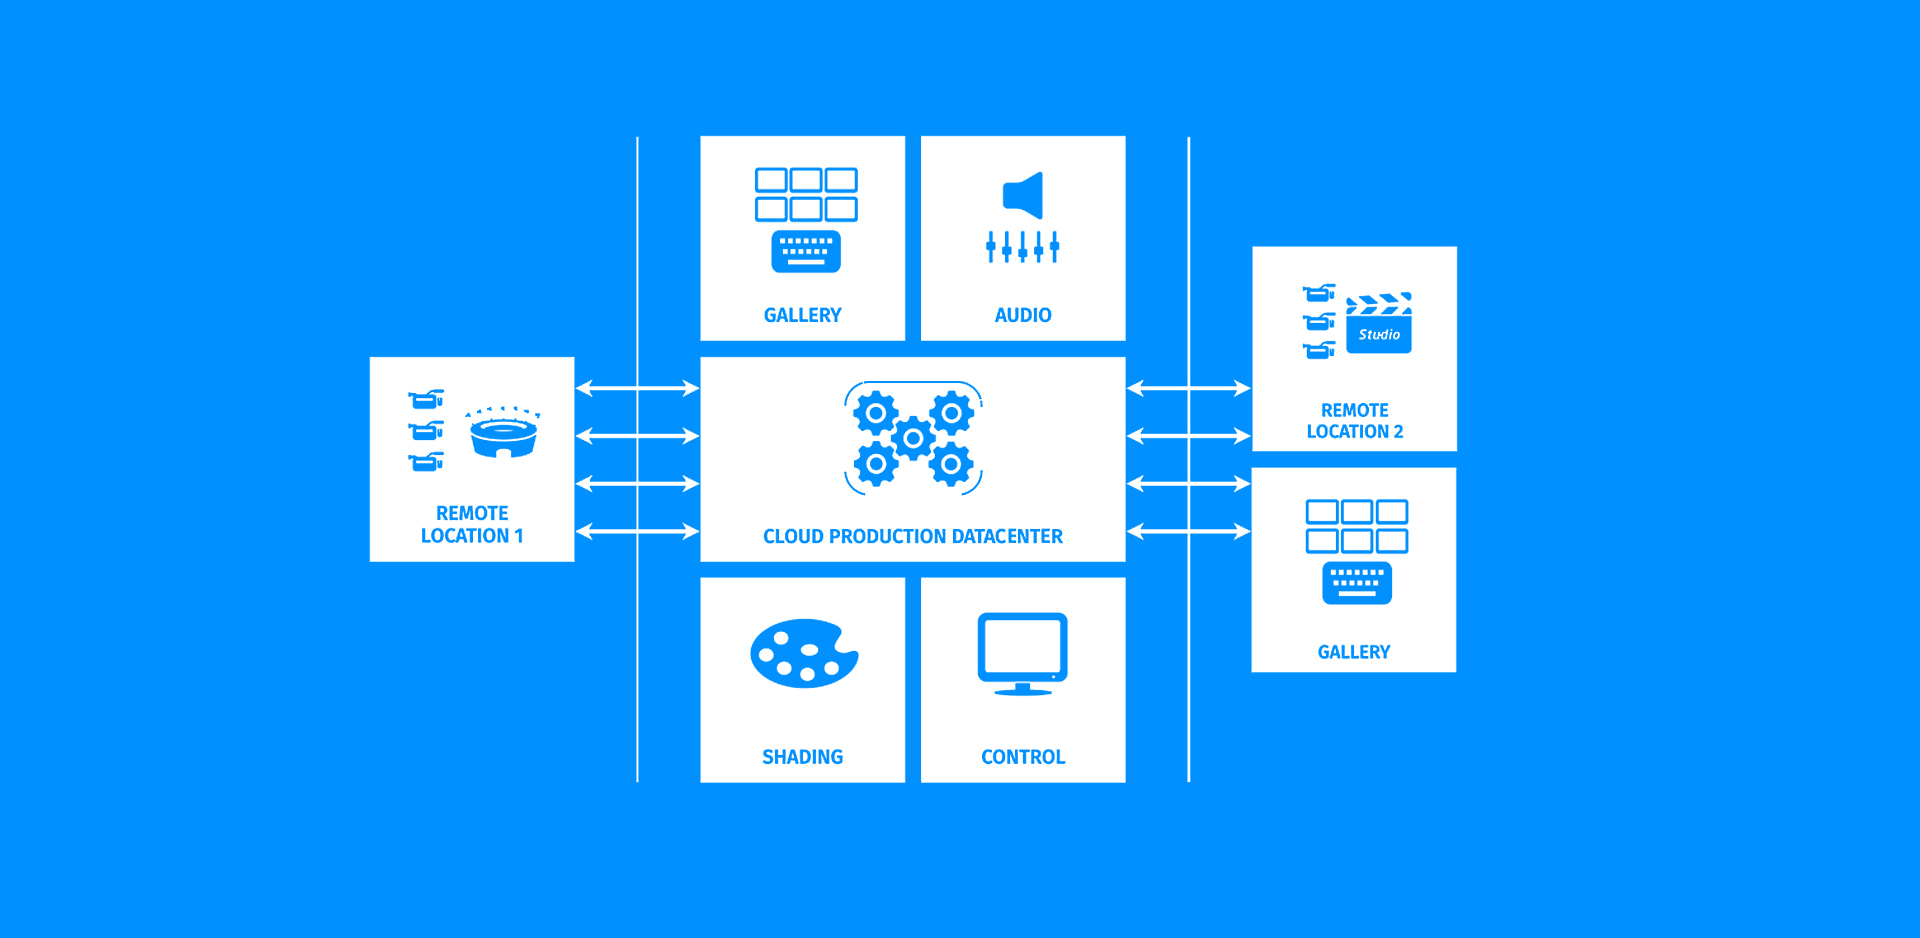 infographic showing the workflow for a centralized broadcast production